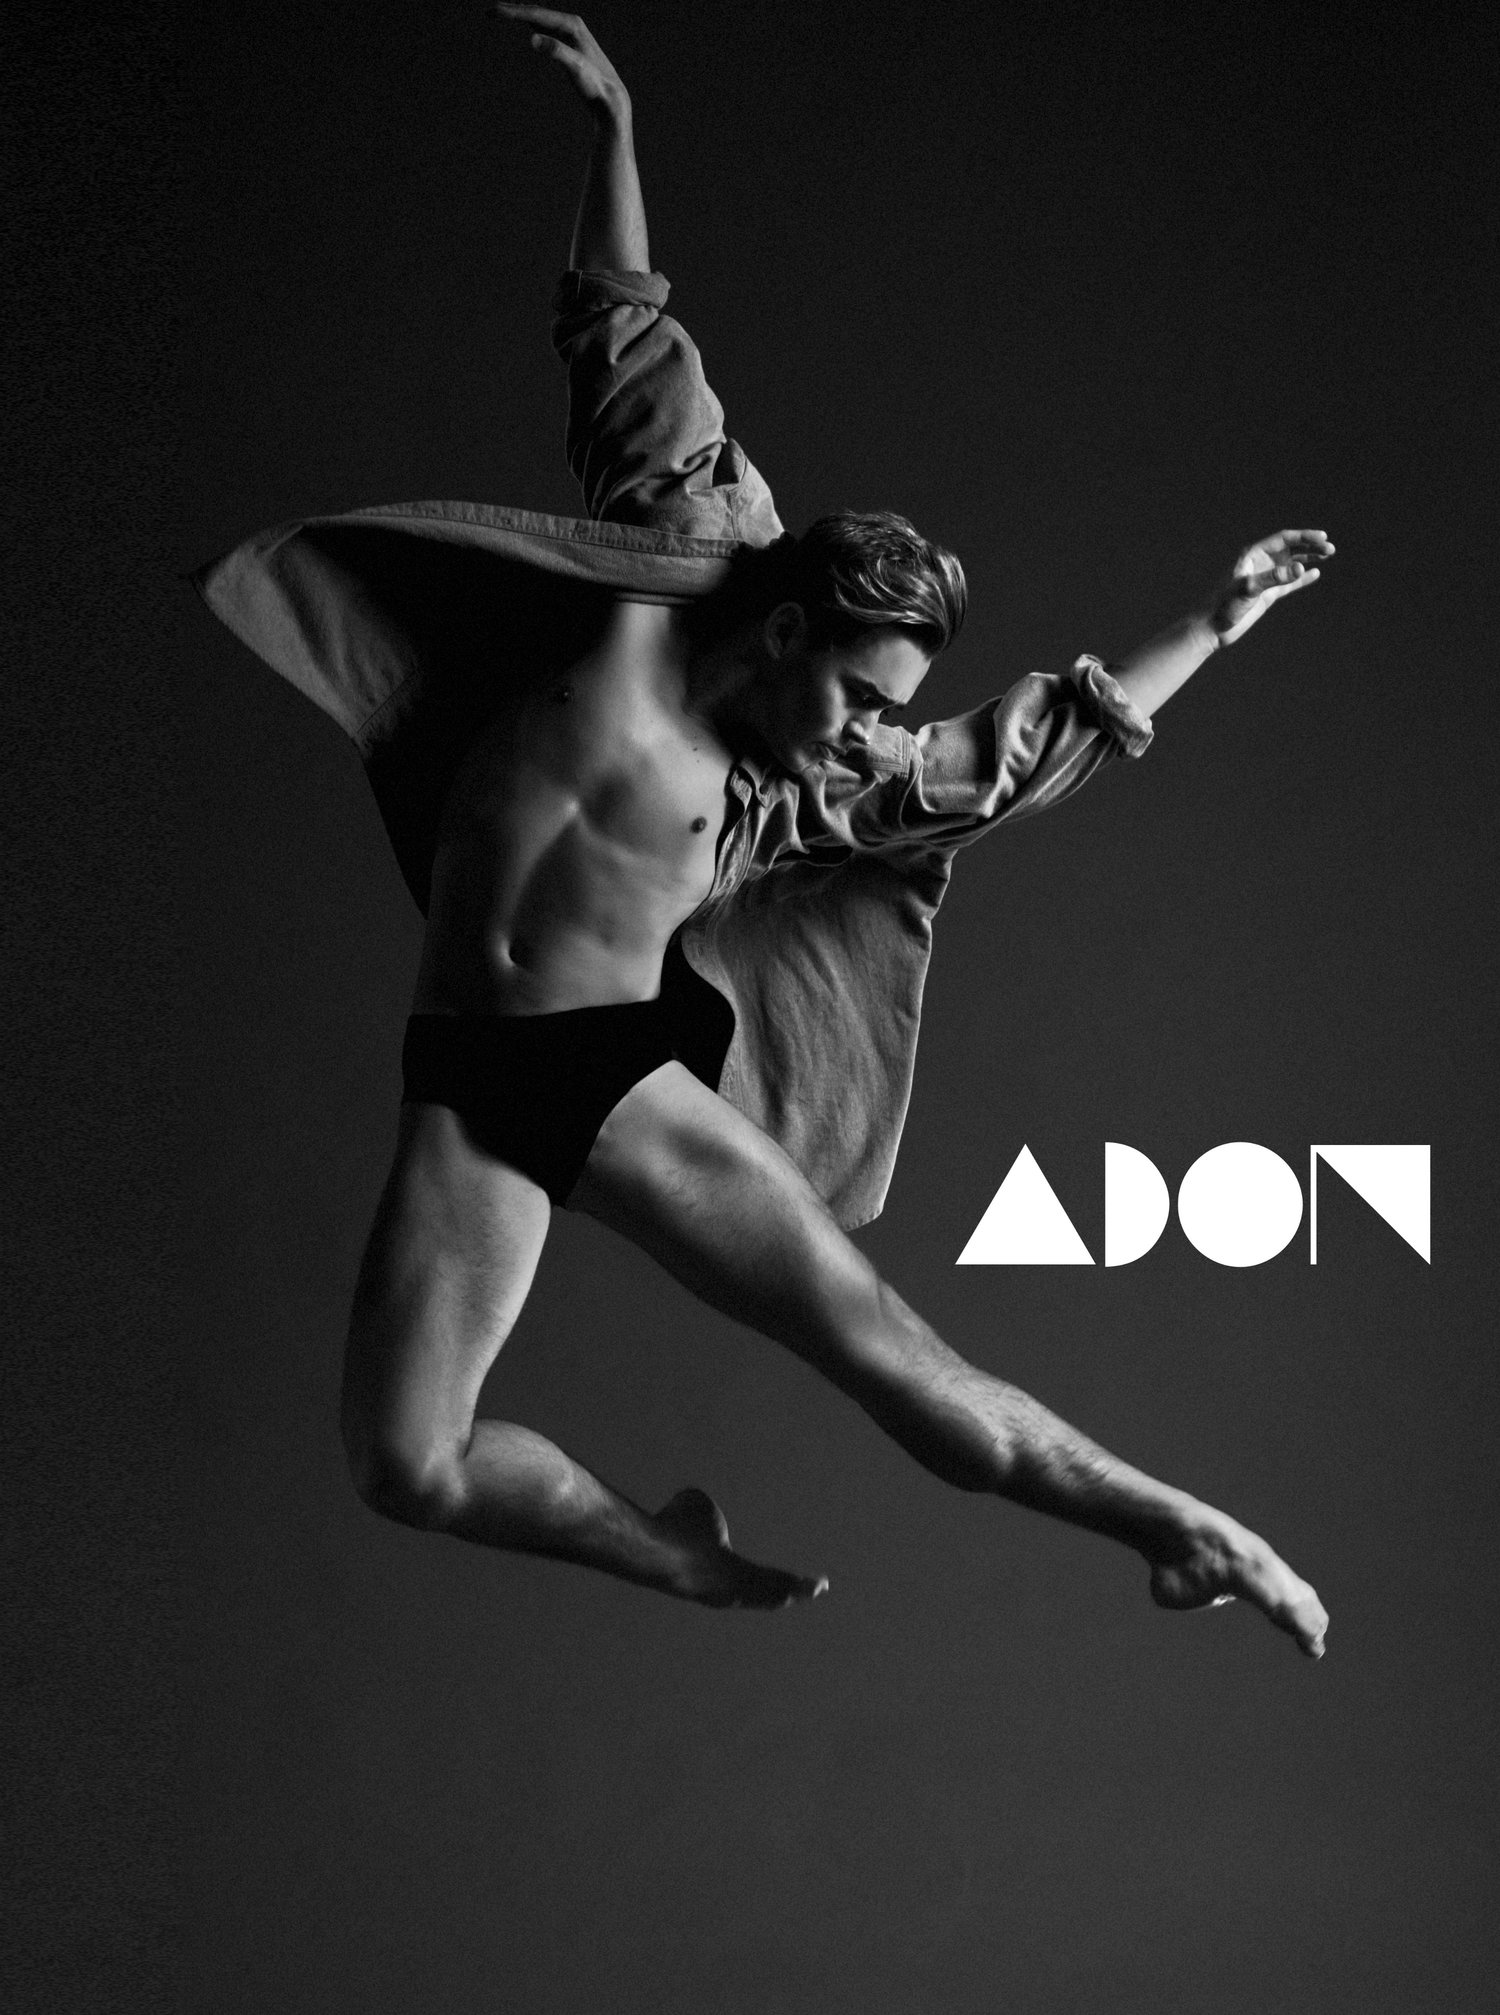 Adon Exclusive: Model Danny Fogarty By Darren Skene